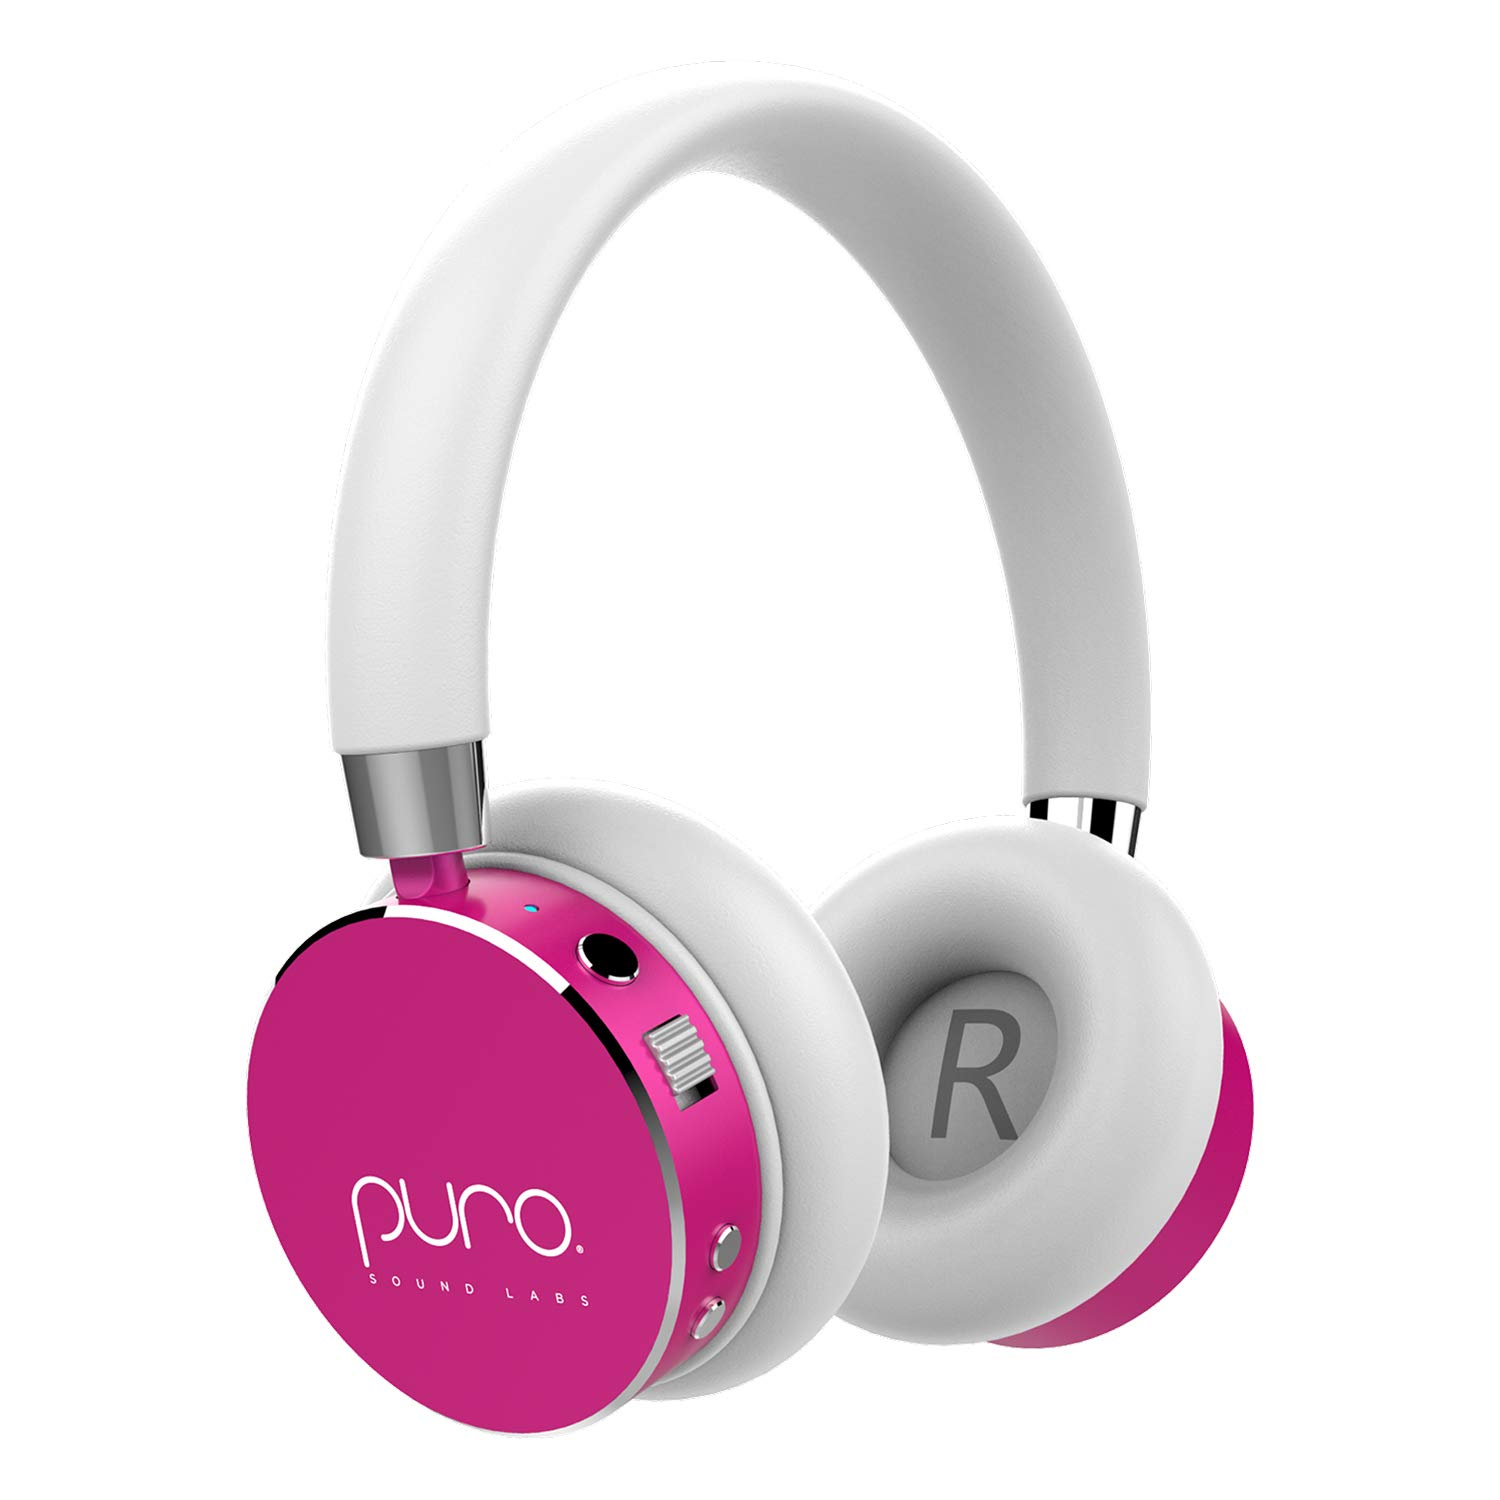 Puro Sound Labs BT2200 Kids Volume-Limiting Over-Ear Wireless Headphones (Pink) by Puro Sound Labs